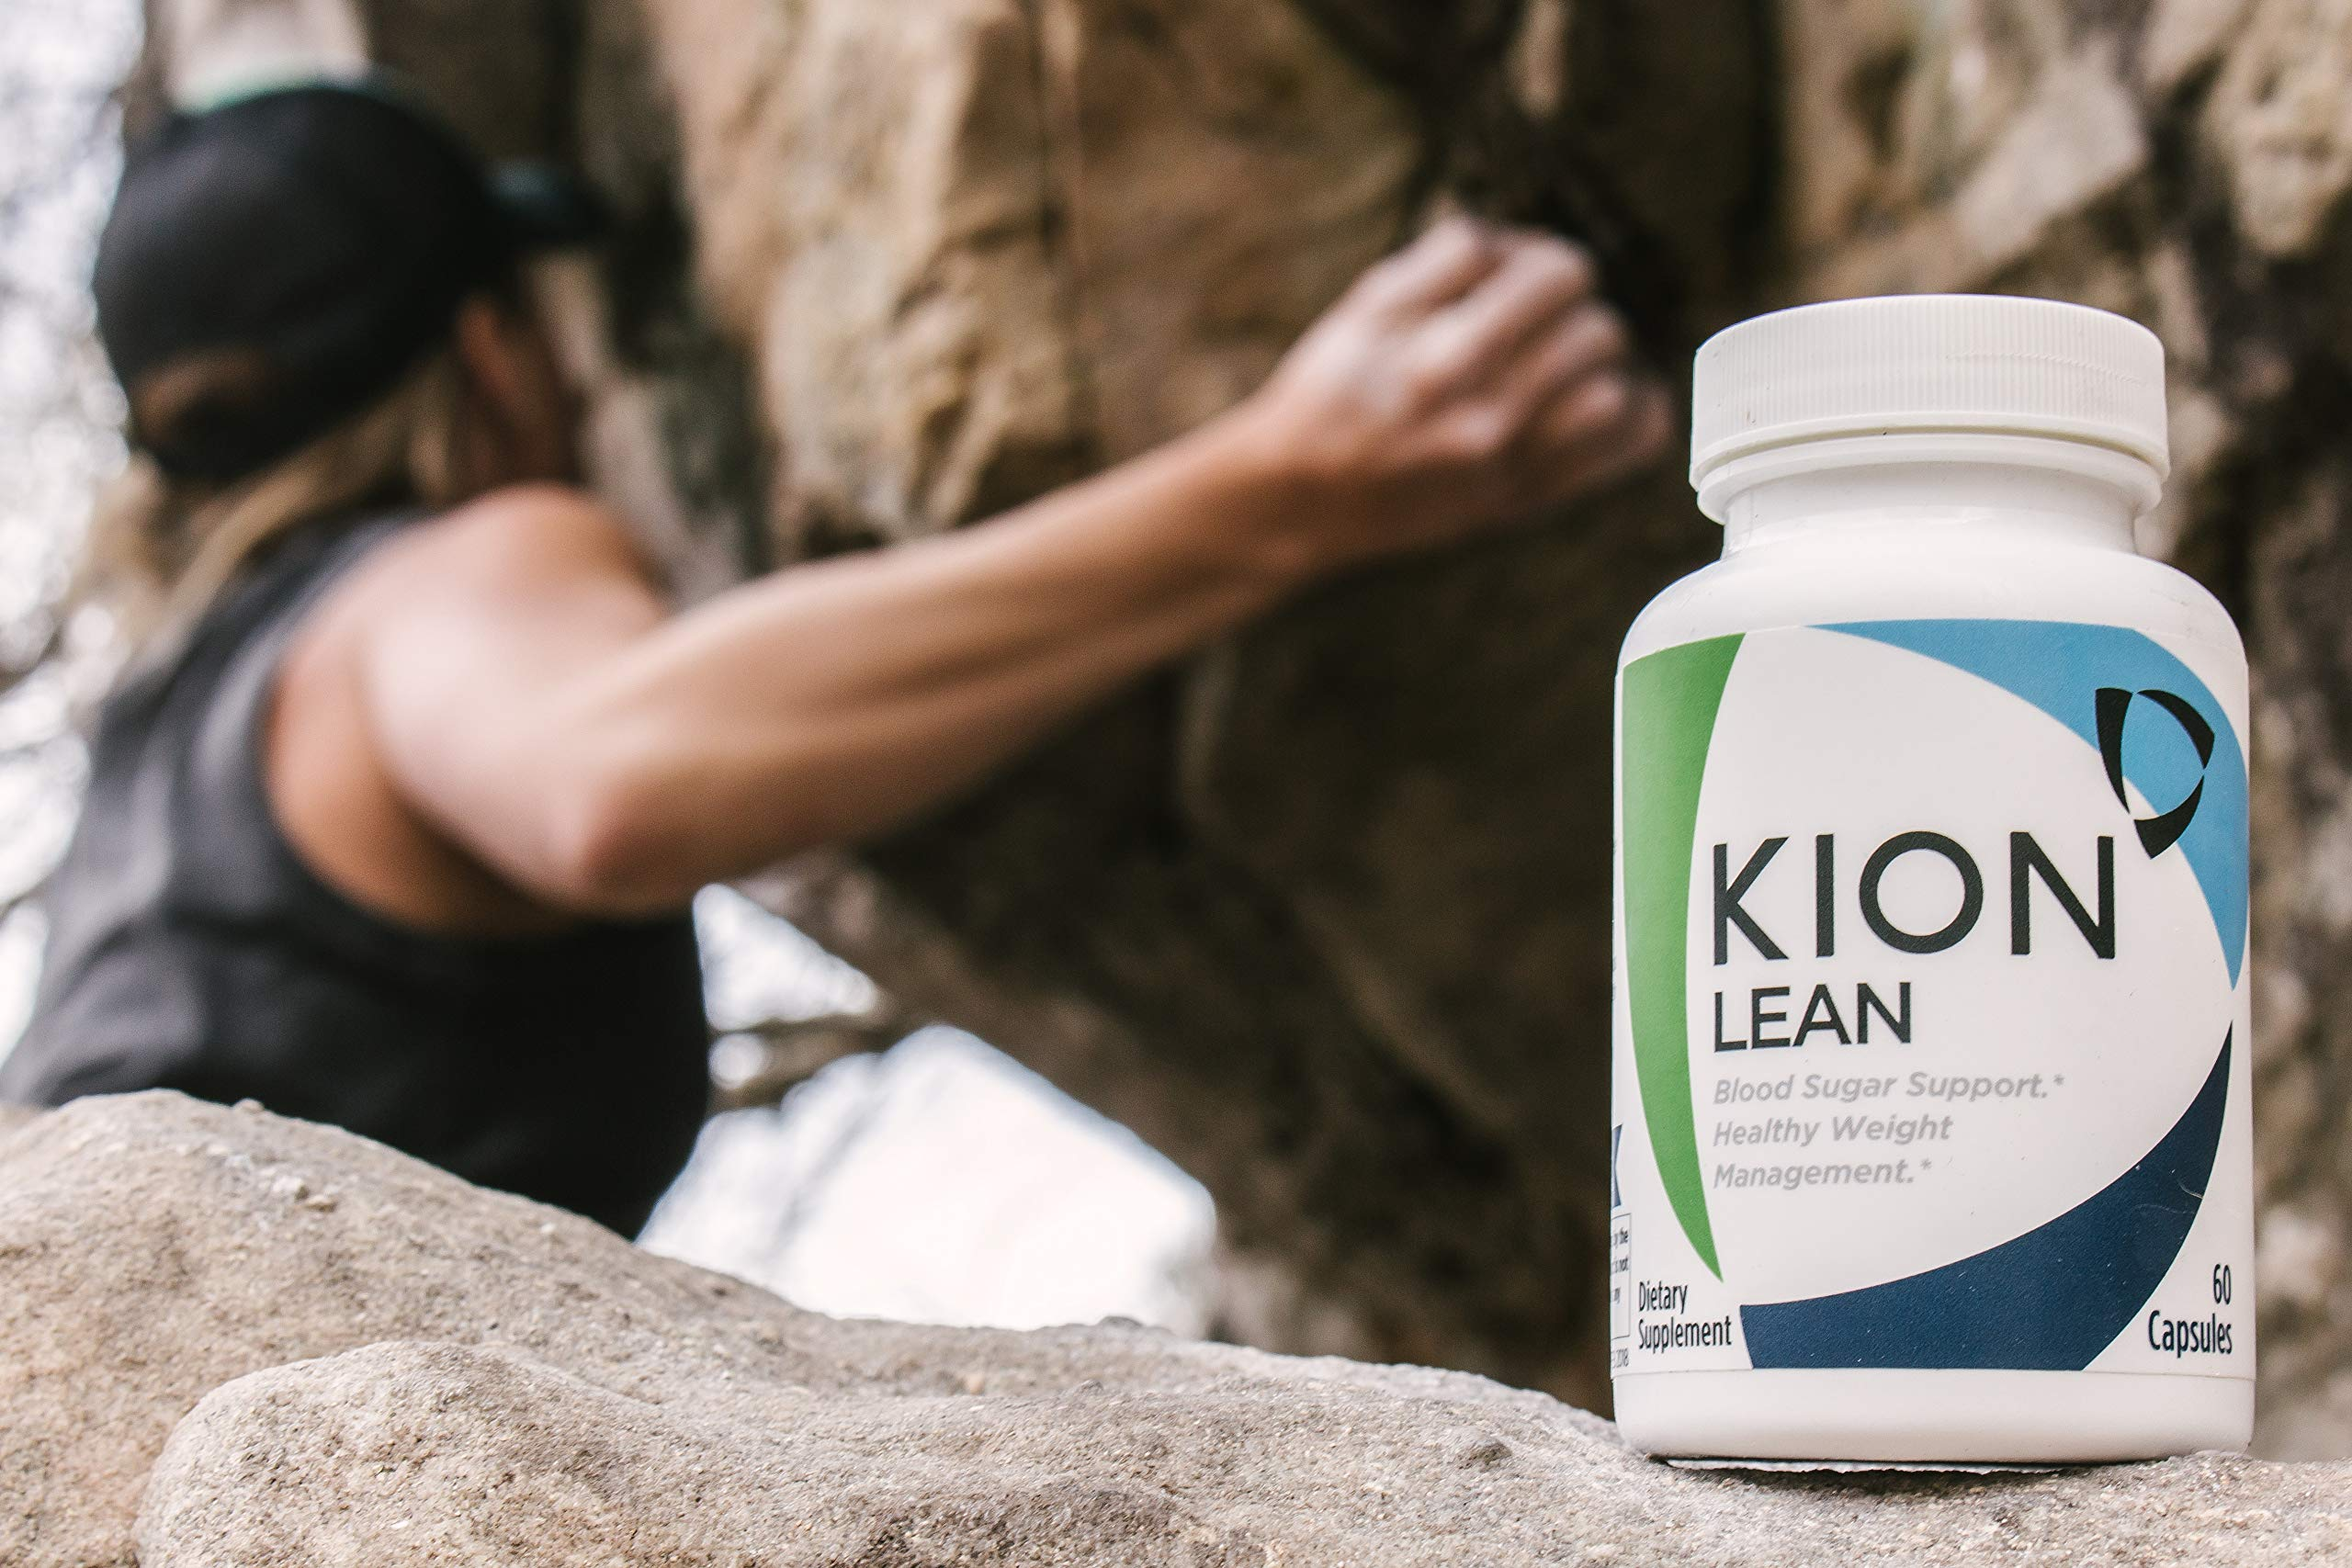 Kion Lean | Supports Weight Management, Liver Health, Blood Sugar Regulation, Healthy Body Fat Levels, and Longevity | Contains Bitter Melon (Glycostat) and Rock Lotus (Kingsun) | 30 Servings by Kion (Image #4)